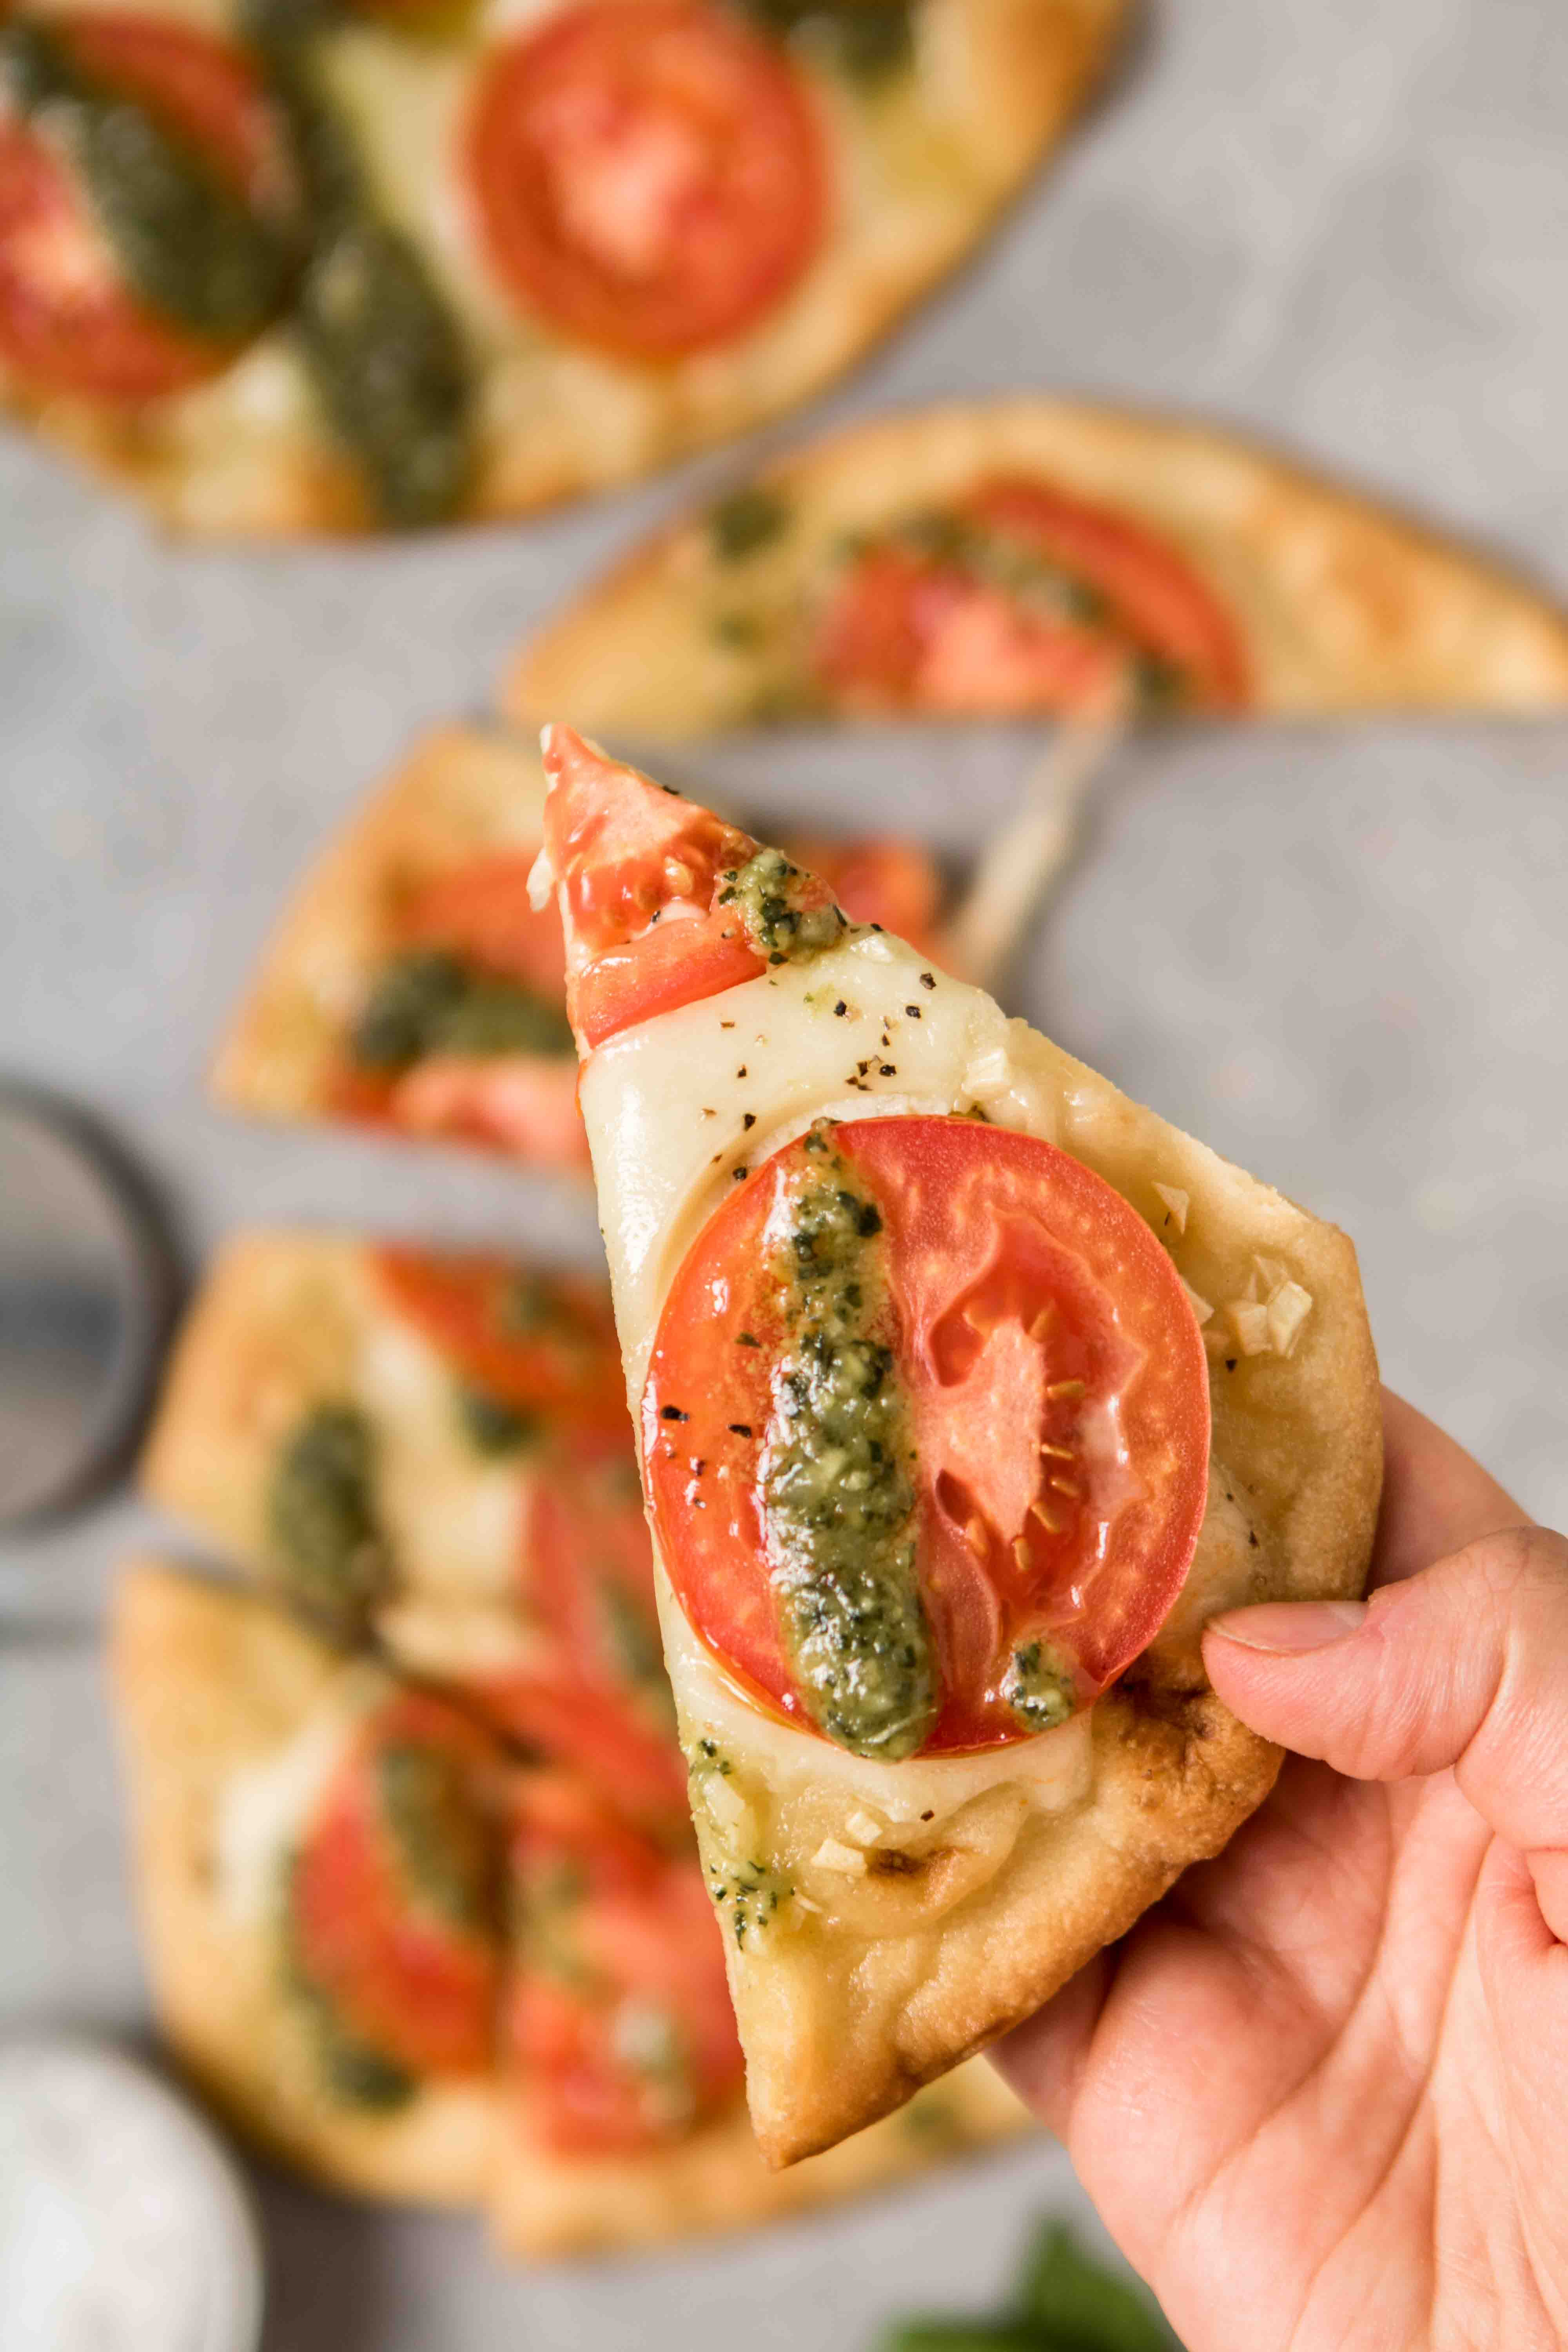 Hand holding a slice of naan bread pizza with pesto